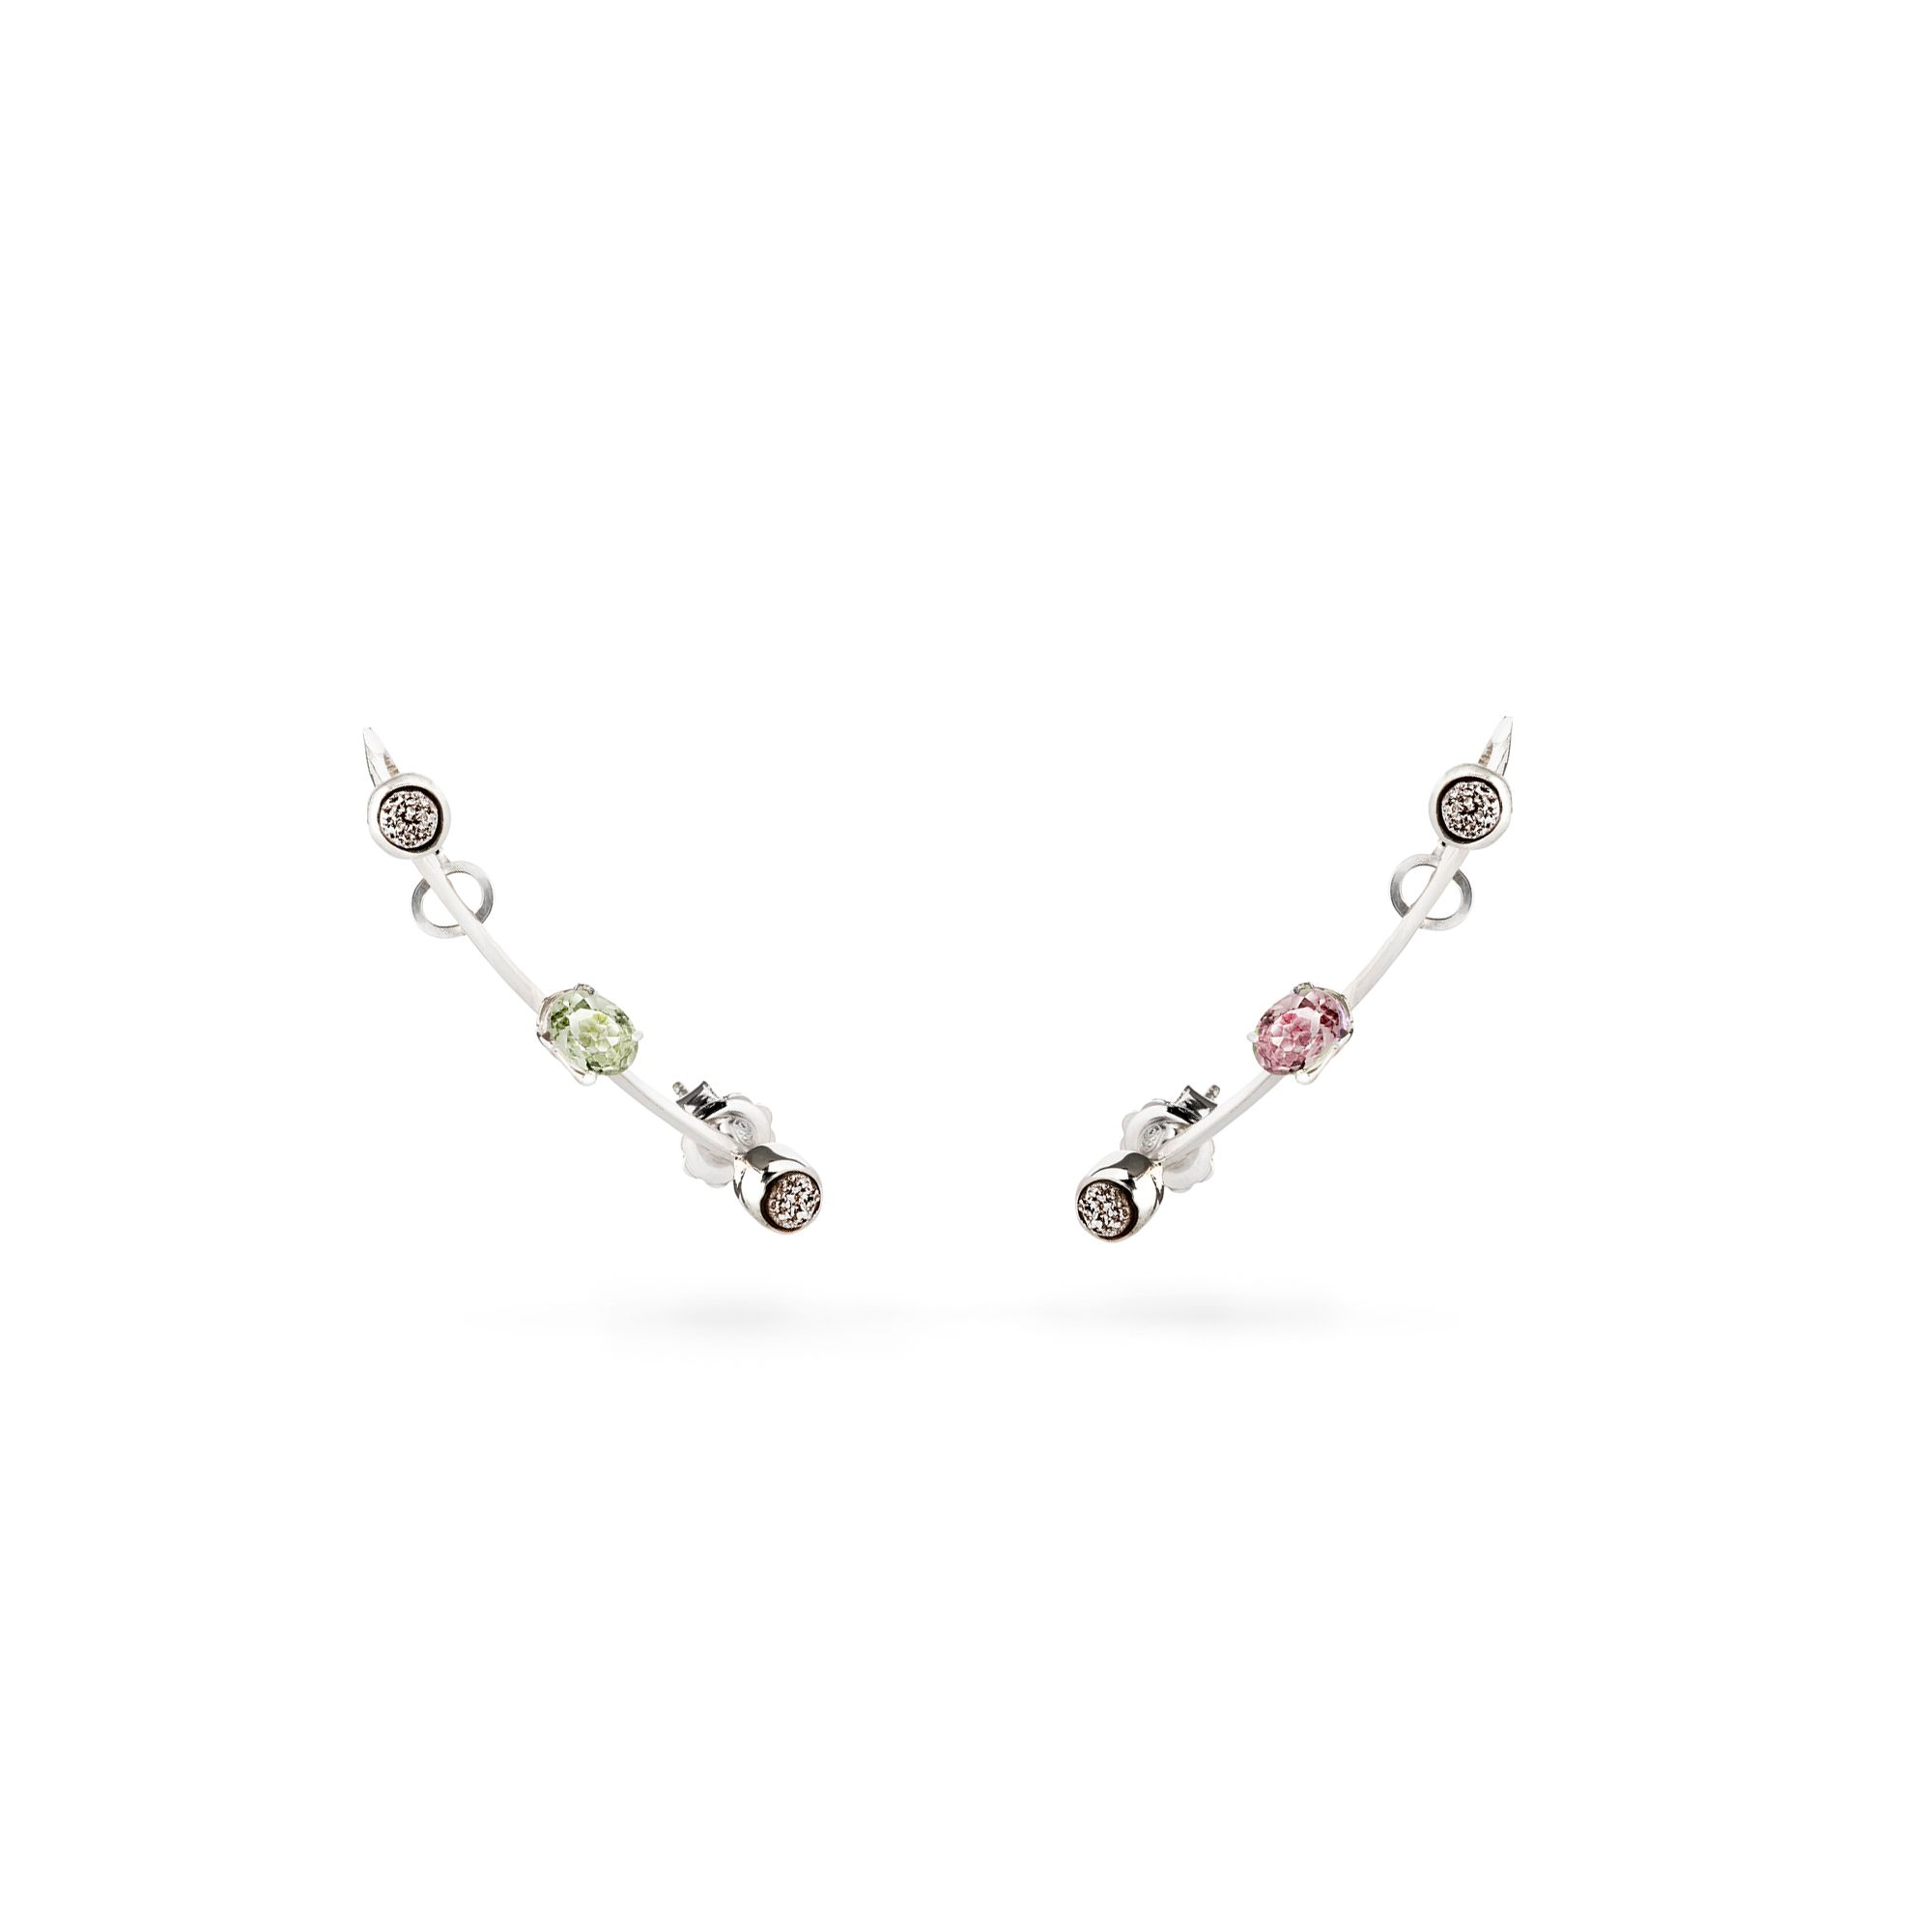 Tourmaline 'Lancia' earrings Silver earrings with tourmalines and druse